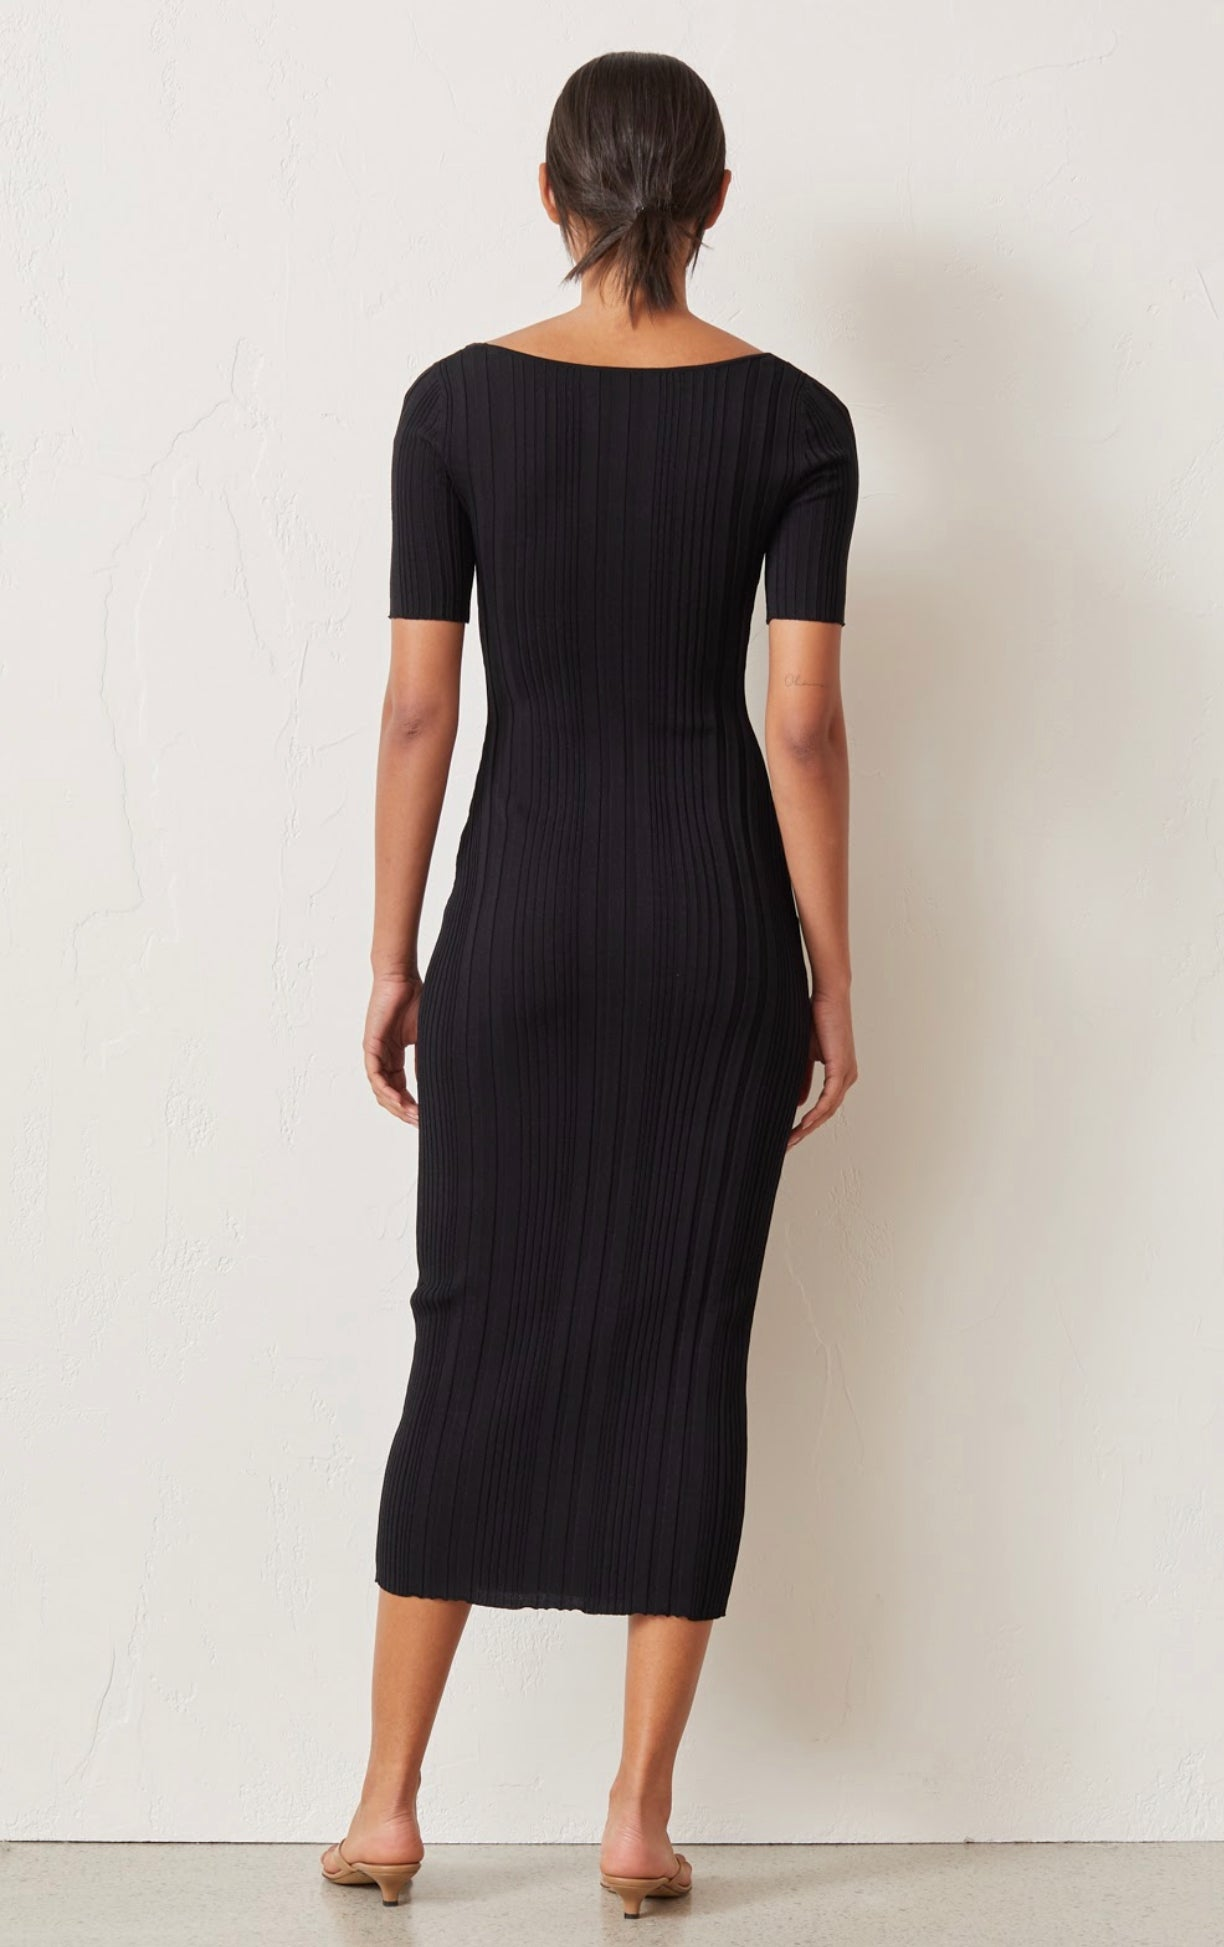 Bec & Bridge Toulouse Knit Midi Dress - Black